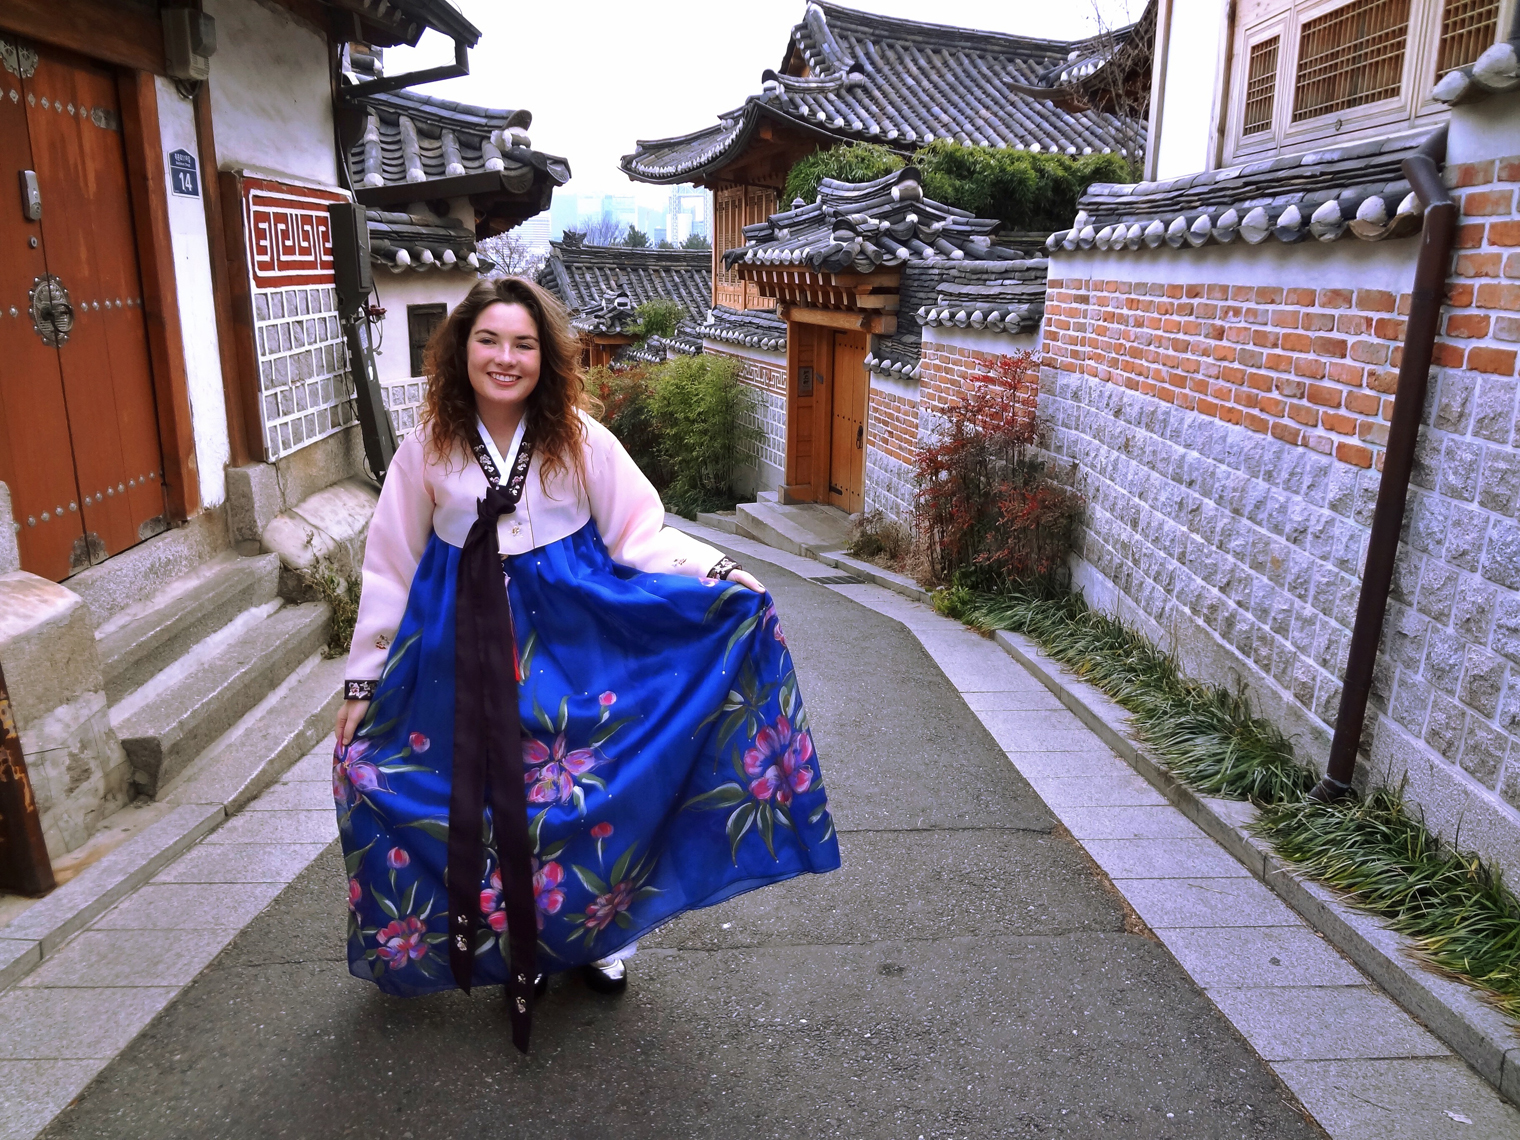 Senior international relations major Nora McKenna studied abroad in South Korea last semester for a total of four months. During her time in Seoul, South Korea she noted the different teaching approaches as well as the prominence of Internet culture.